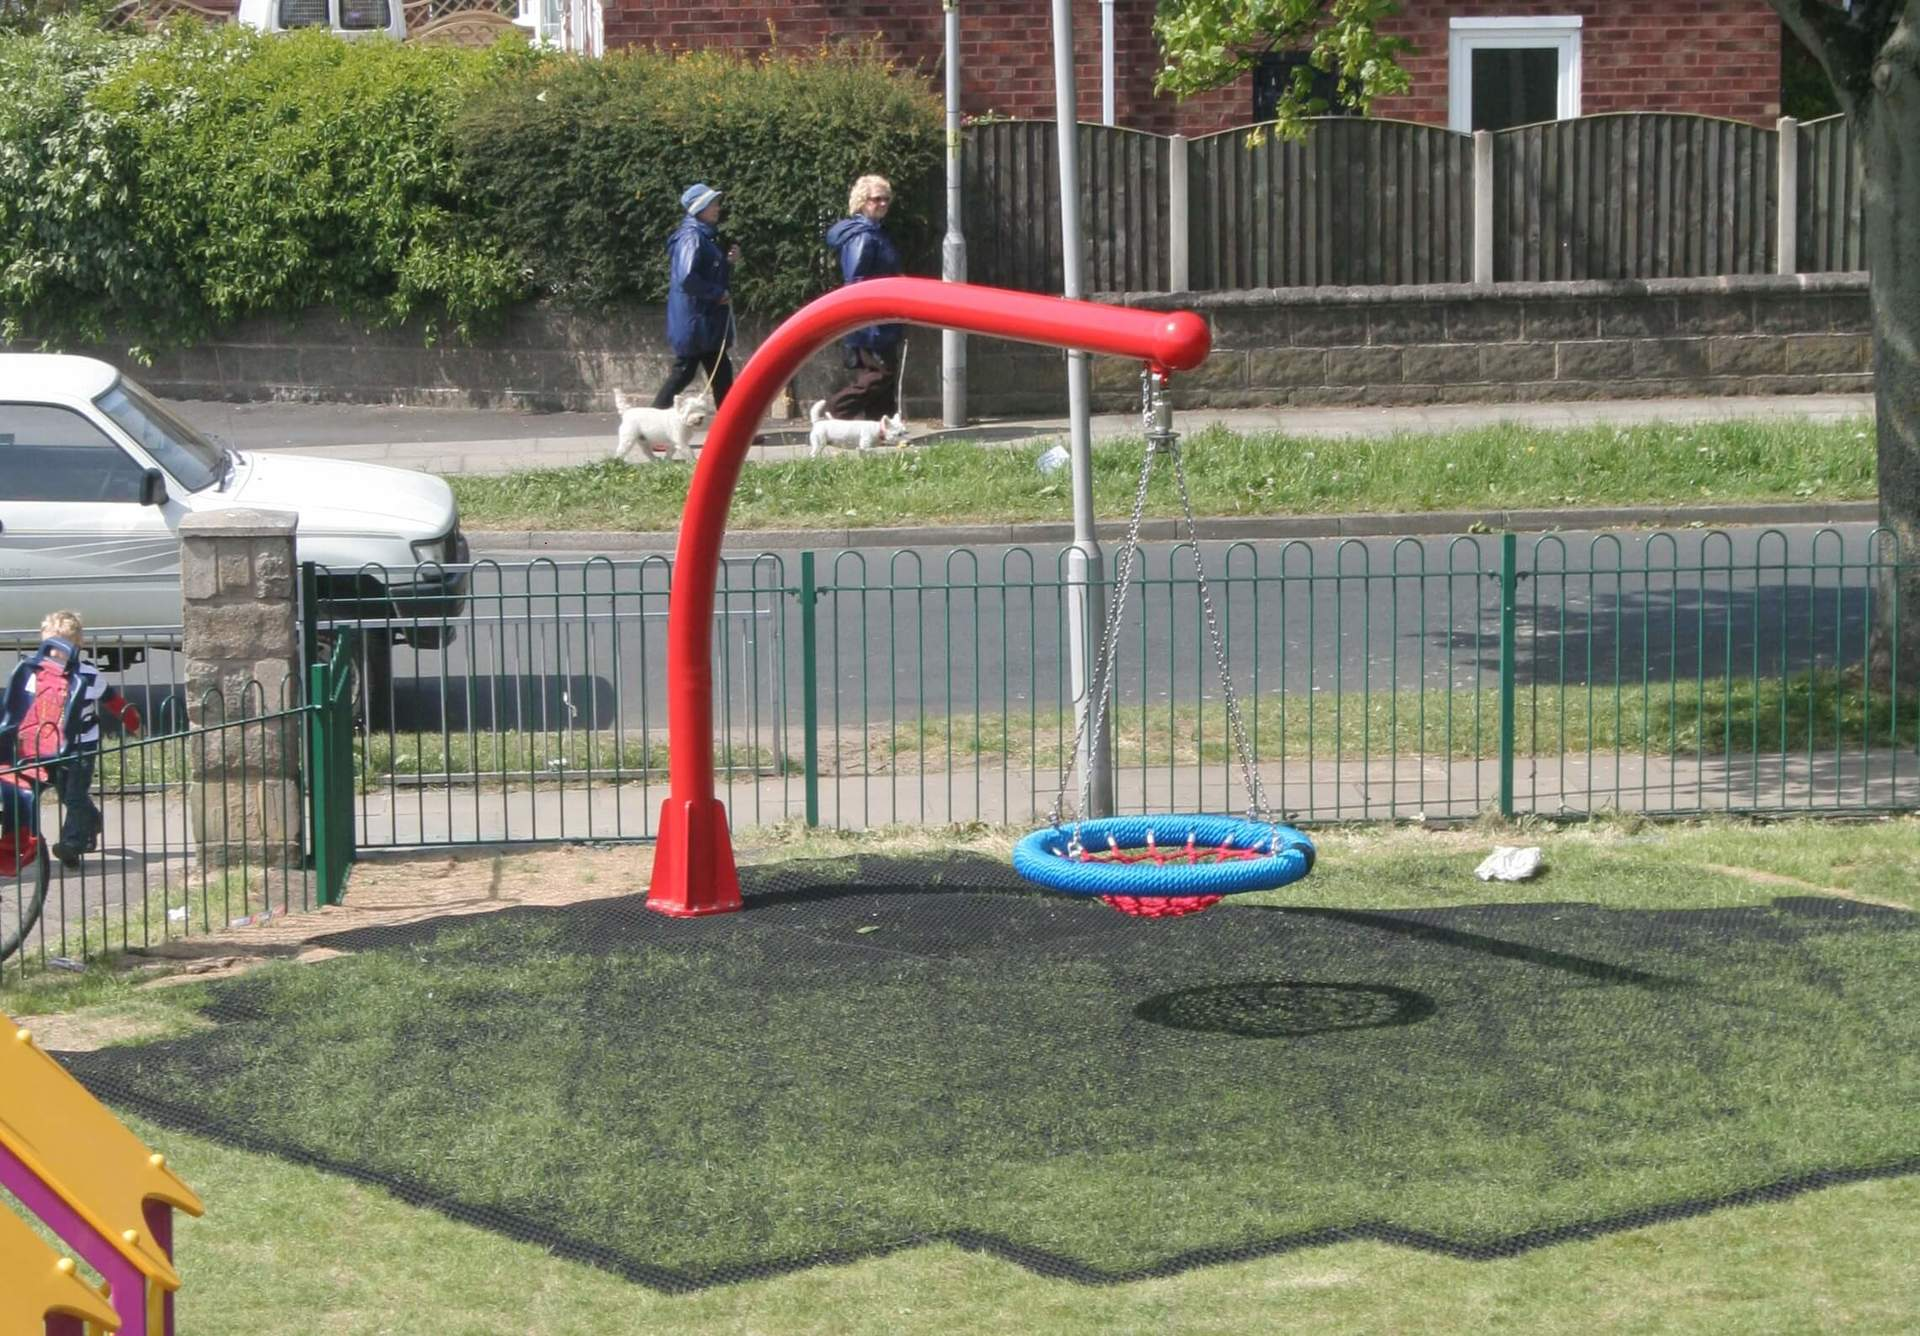 Bespoke Creative Play Equipment Provider – UK